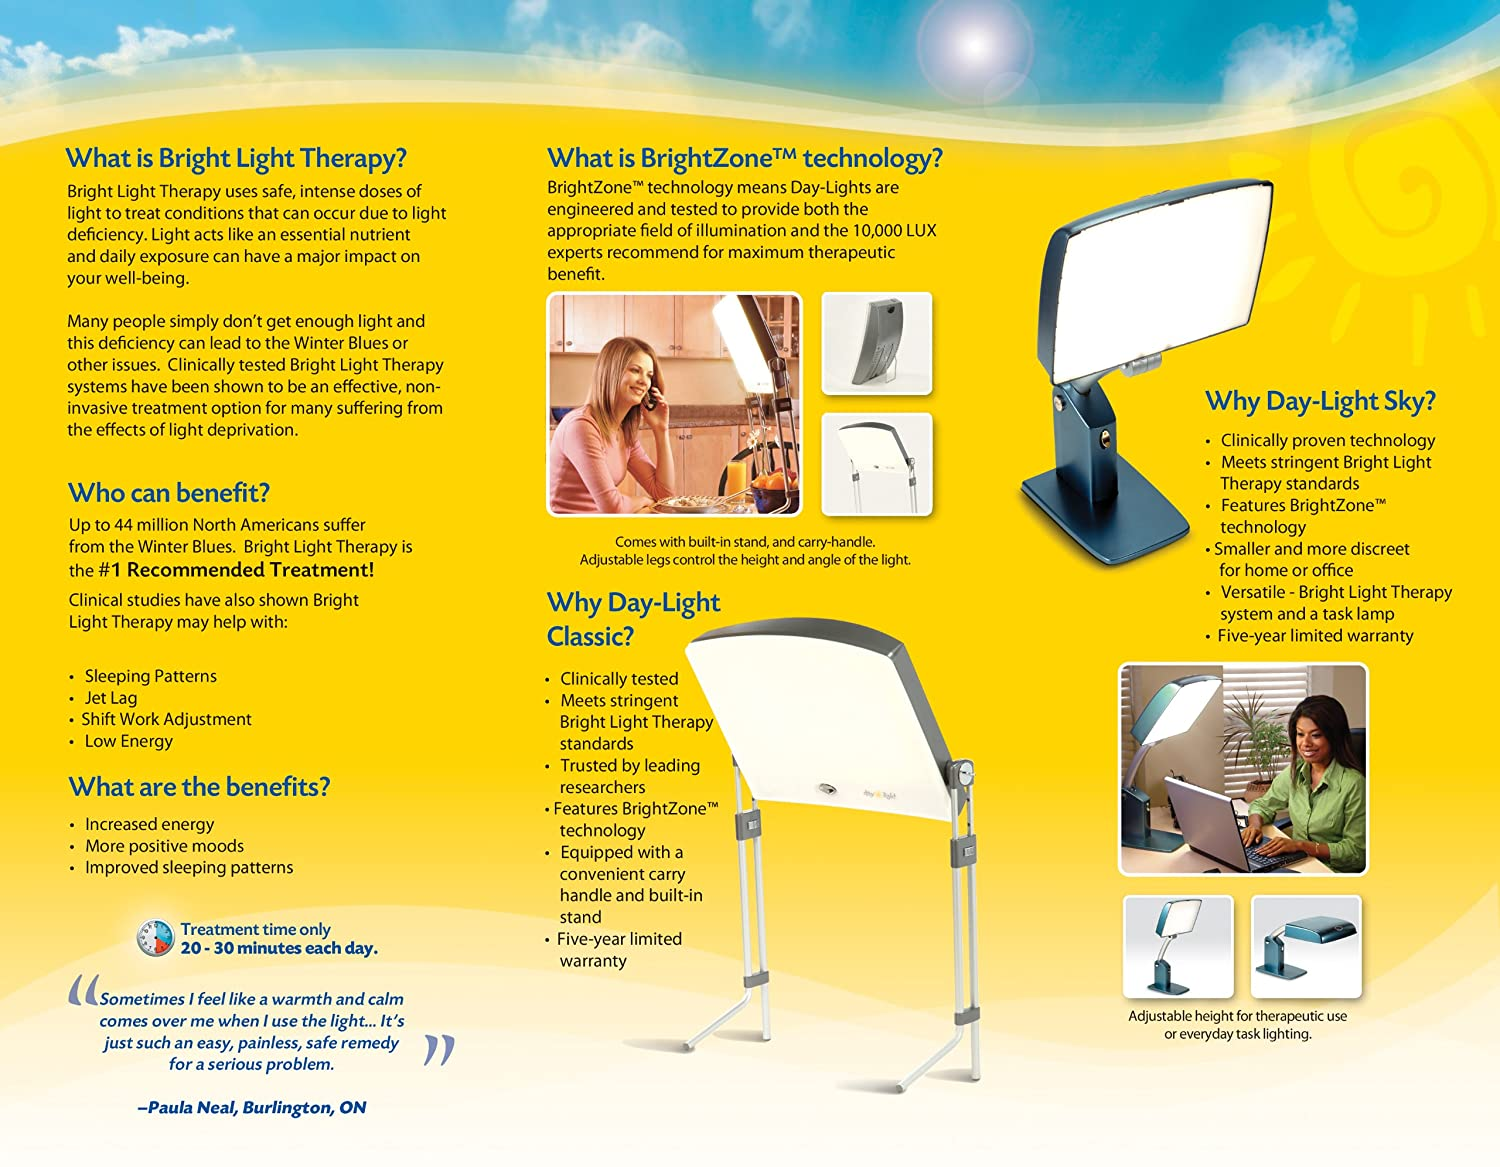 Amazon.com Day-Light Sky Bright Light Therapy L& Provides 10000 LUX of Glare-Free White Light for Seasonal Affective Disorder Therapy Health ...  sc 1 st  Amazon.com & Amazon.com: Day-Light Sky Bright Light Therapy Lamp Provides ... azcodes.com